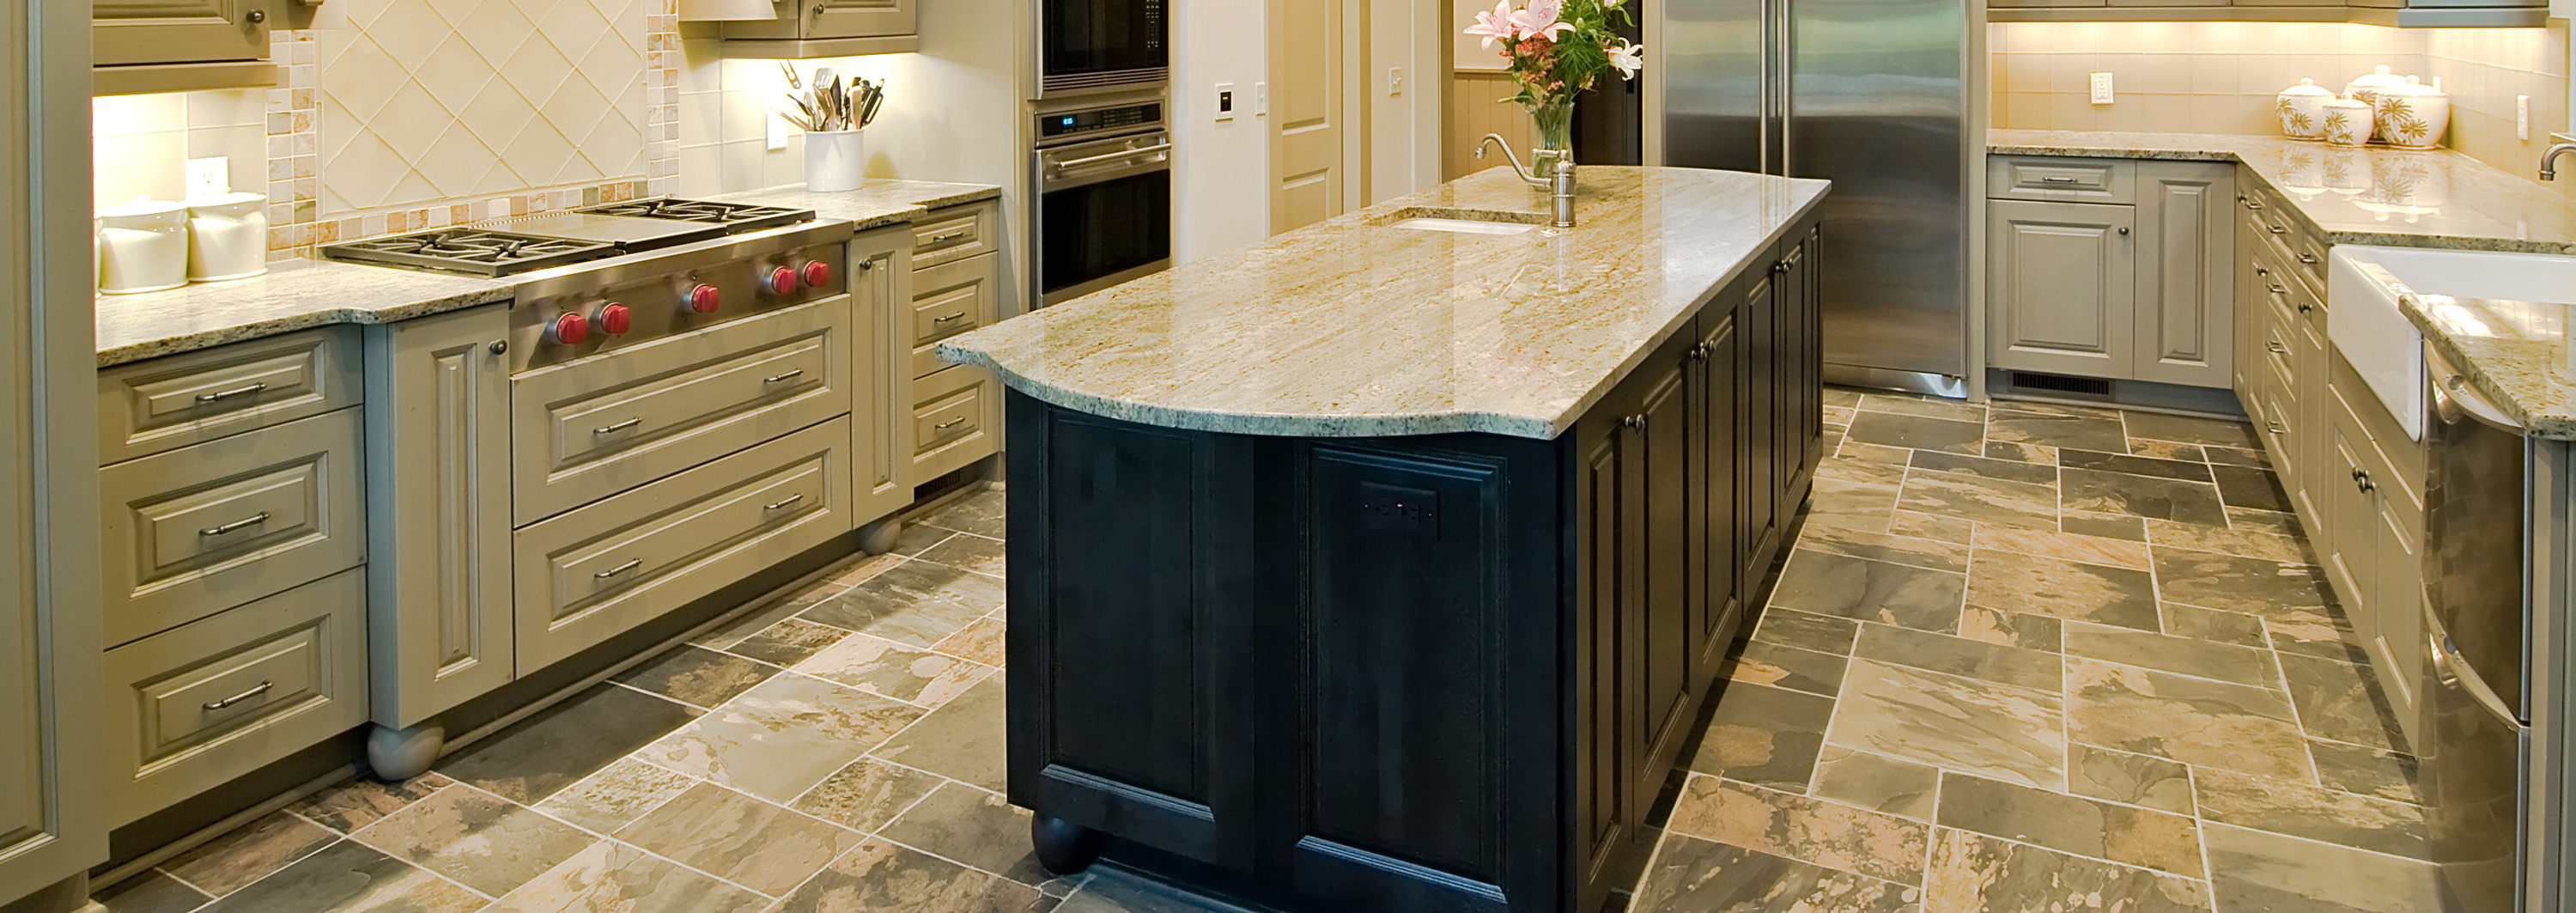 Kitchen Island Cost With Installation Prices Ideas